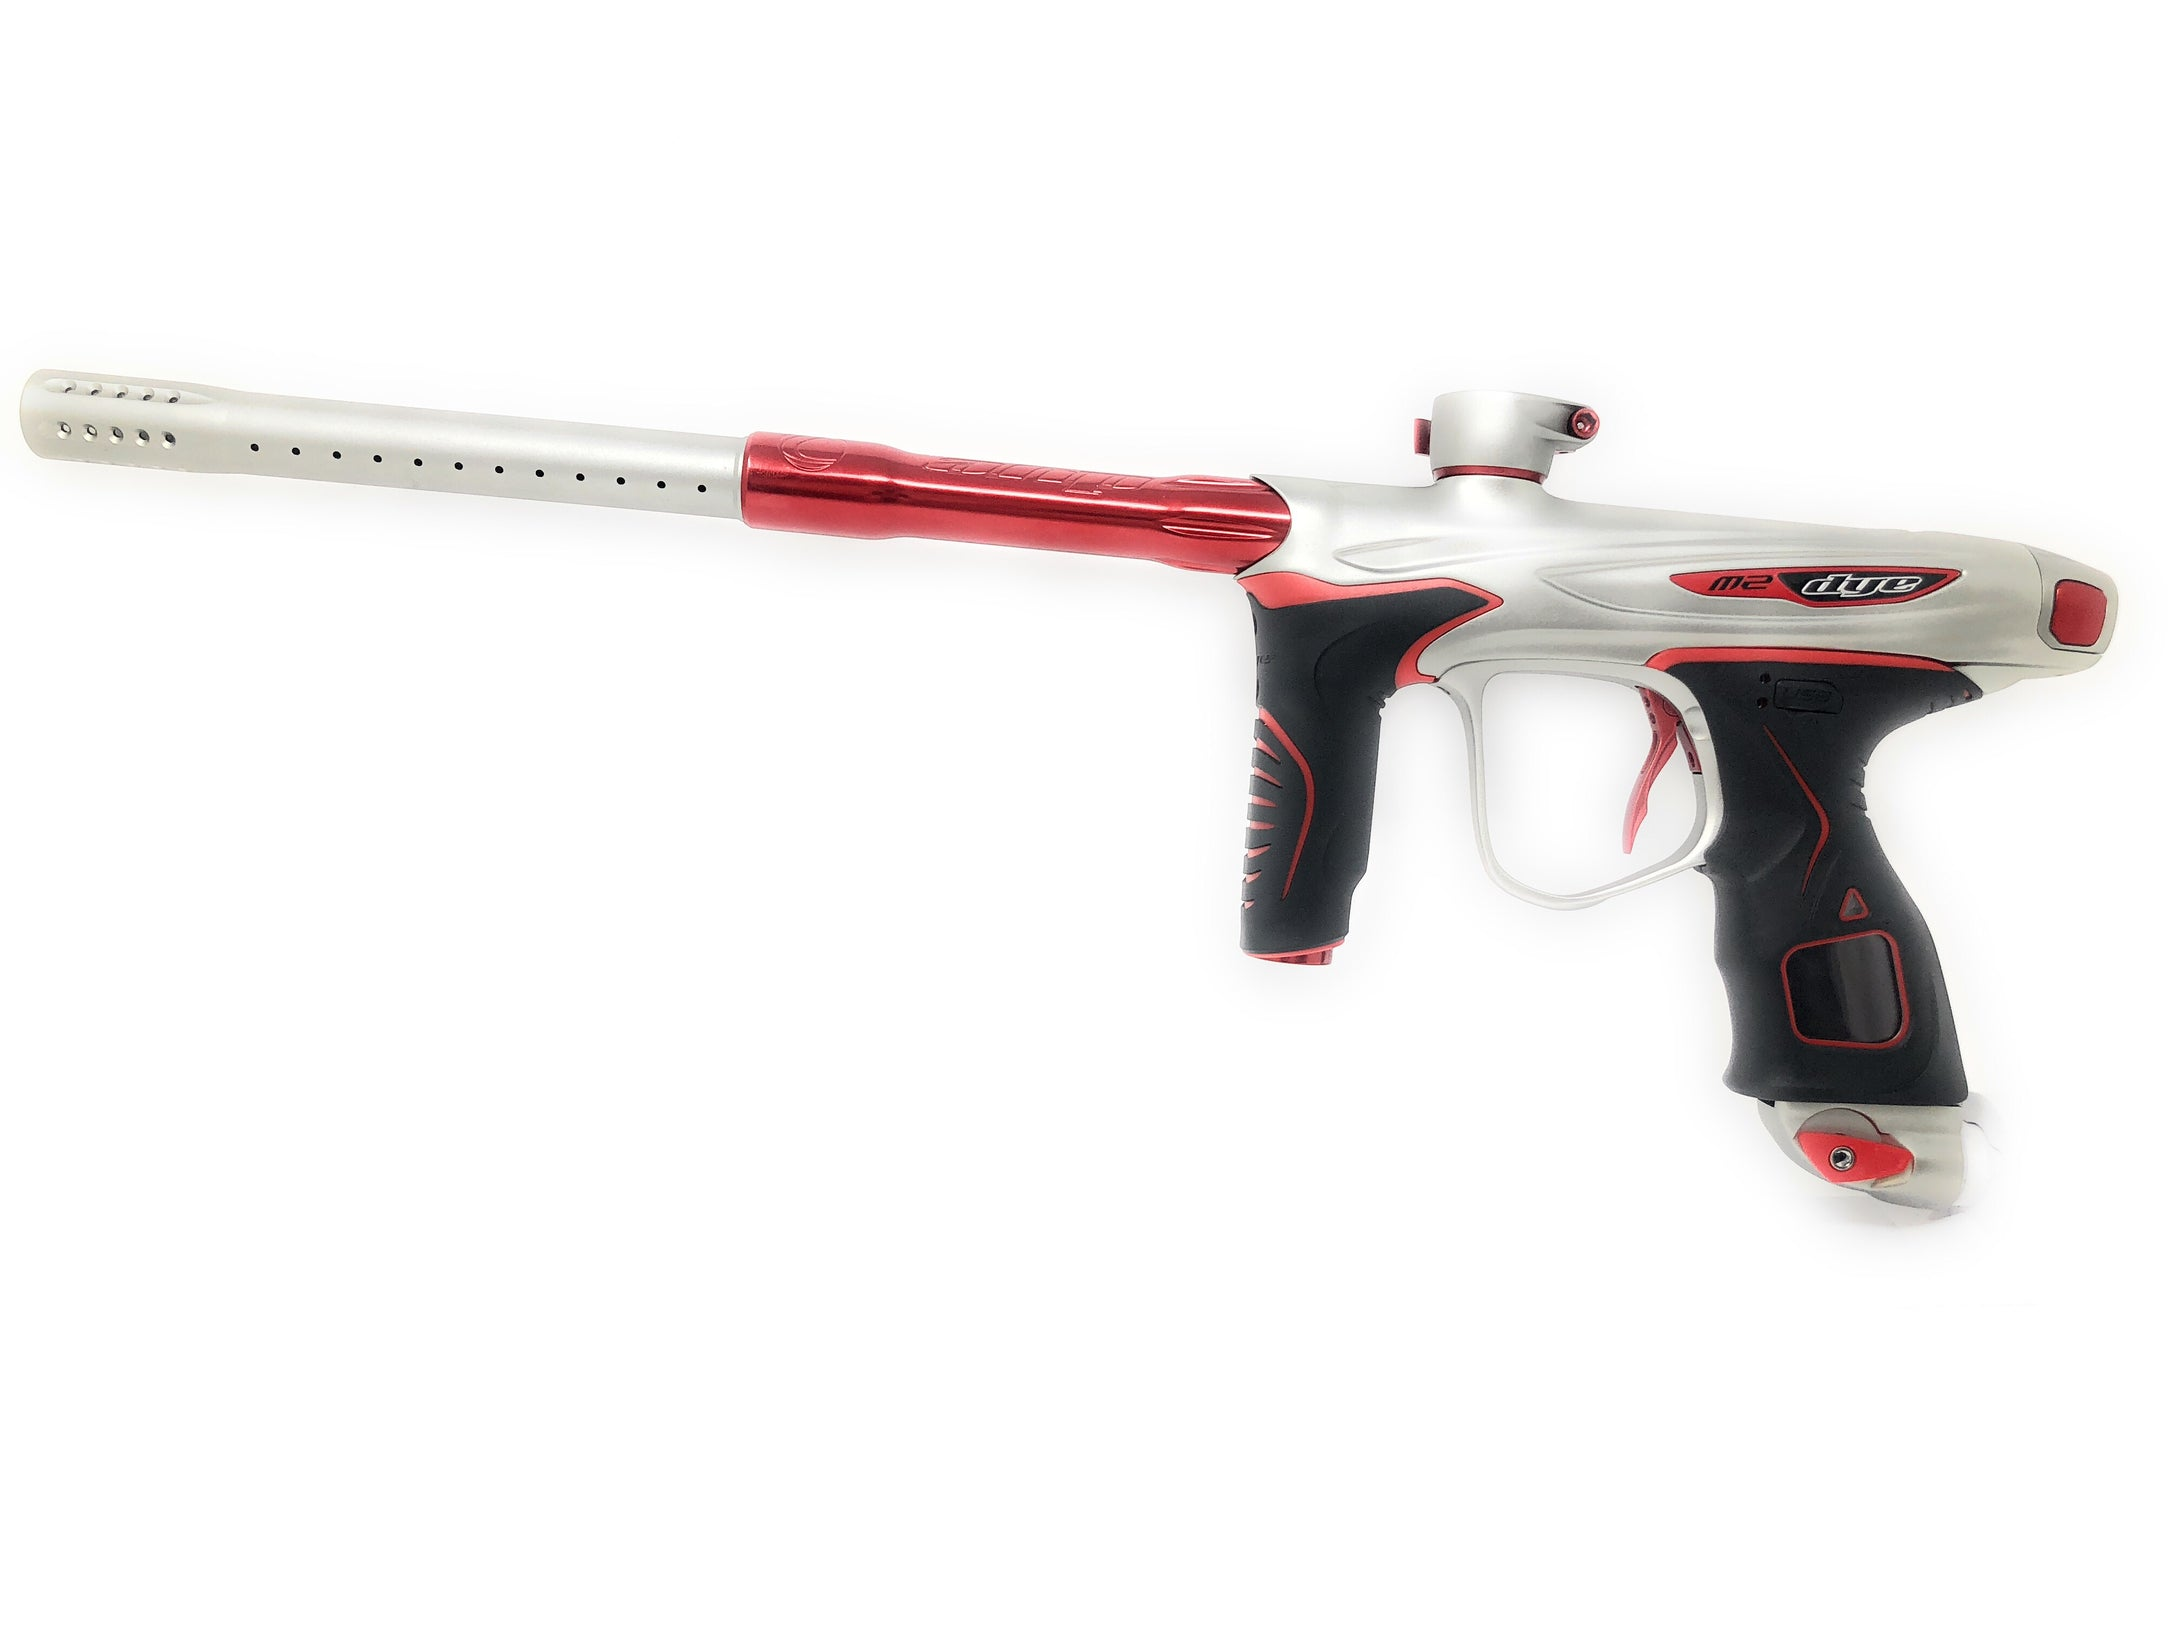 Photos of Dye M2 Paintball Marker - Crimson Winter. Photo taken by drpaintball.com